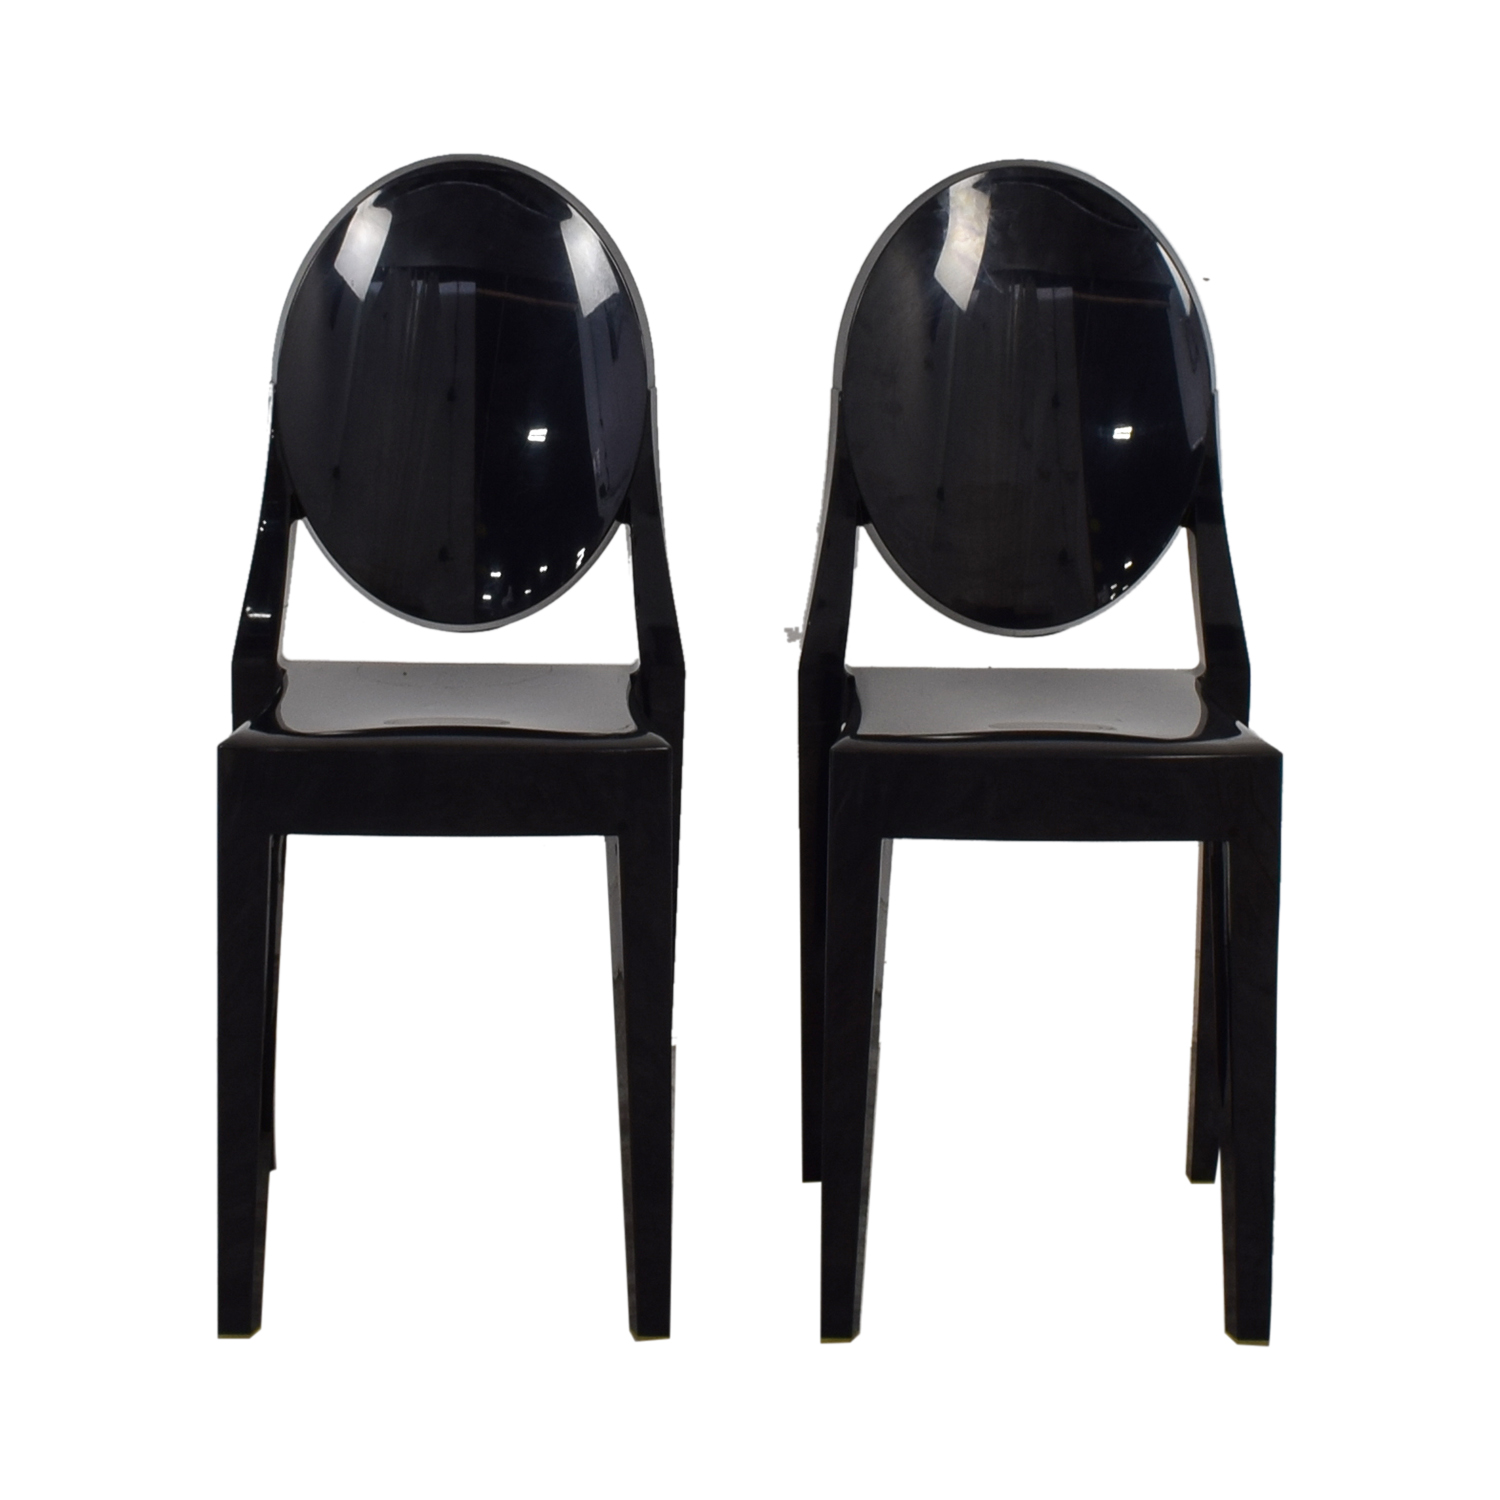 Kartell Kartell Victoria Ghost Black Chairs